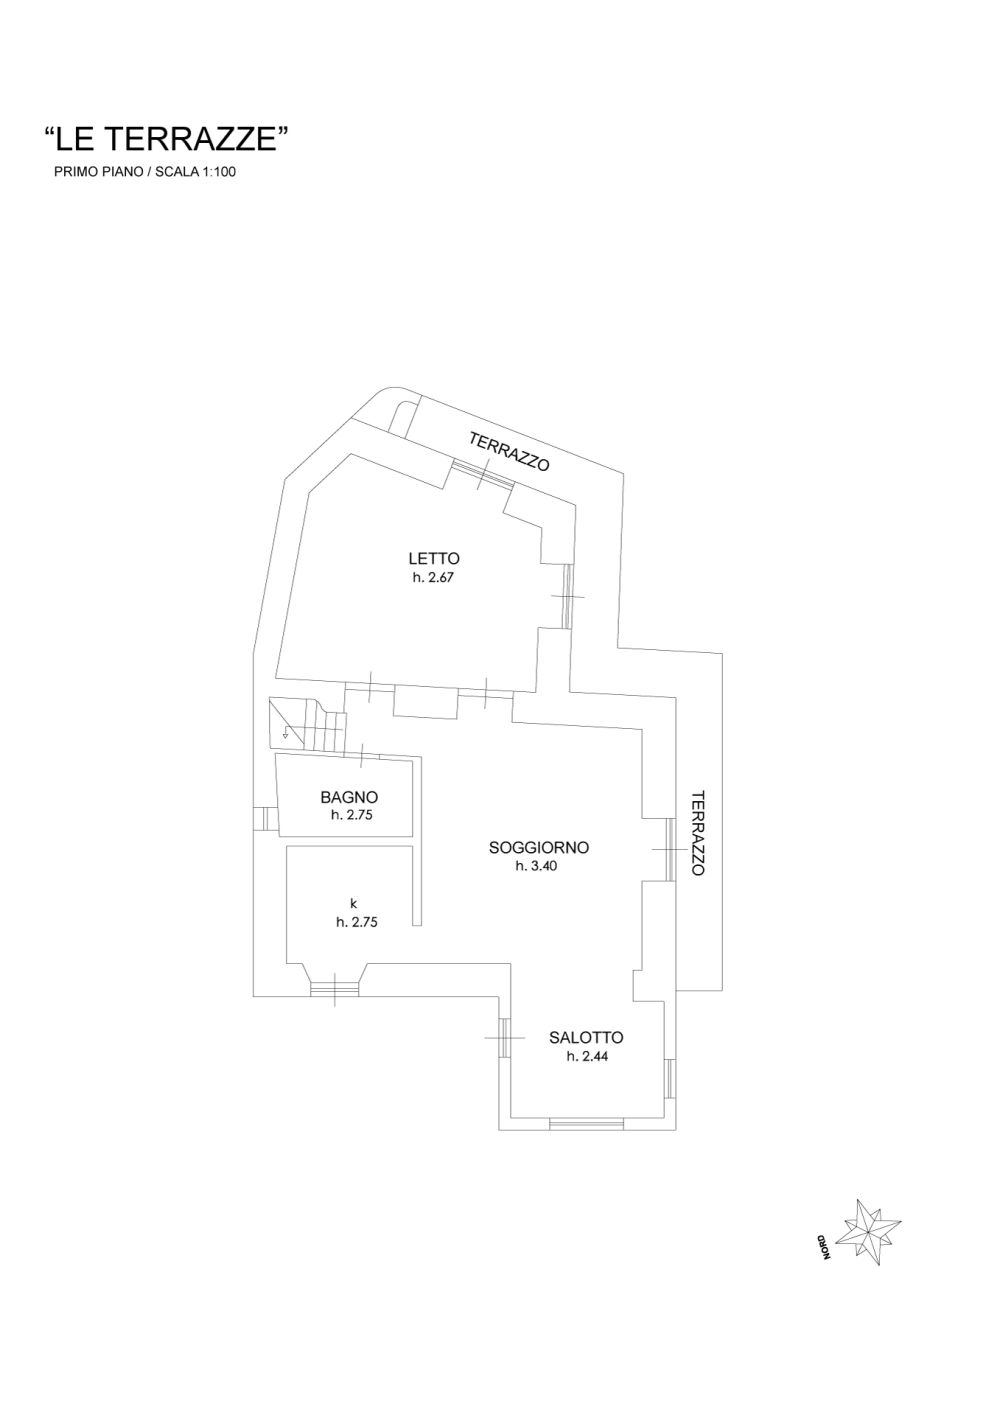 Le Terrazze. Plan of the apartment. First floor.